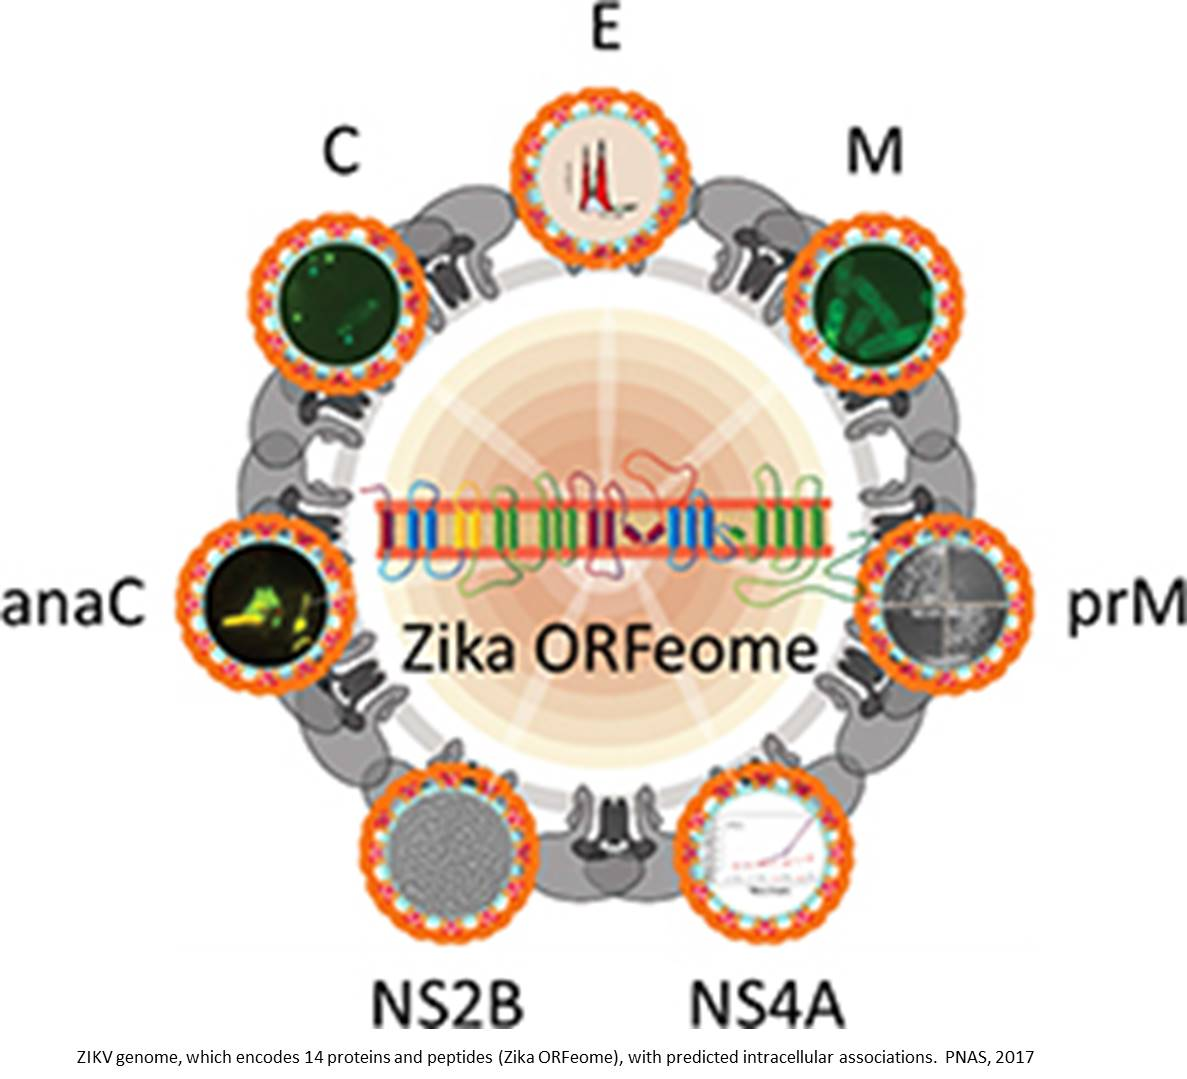 Cytopathic effects of Zika virus proteins